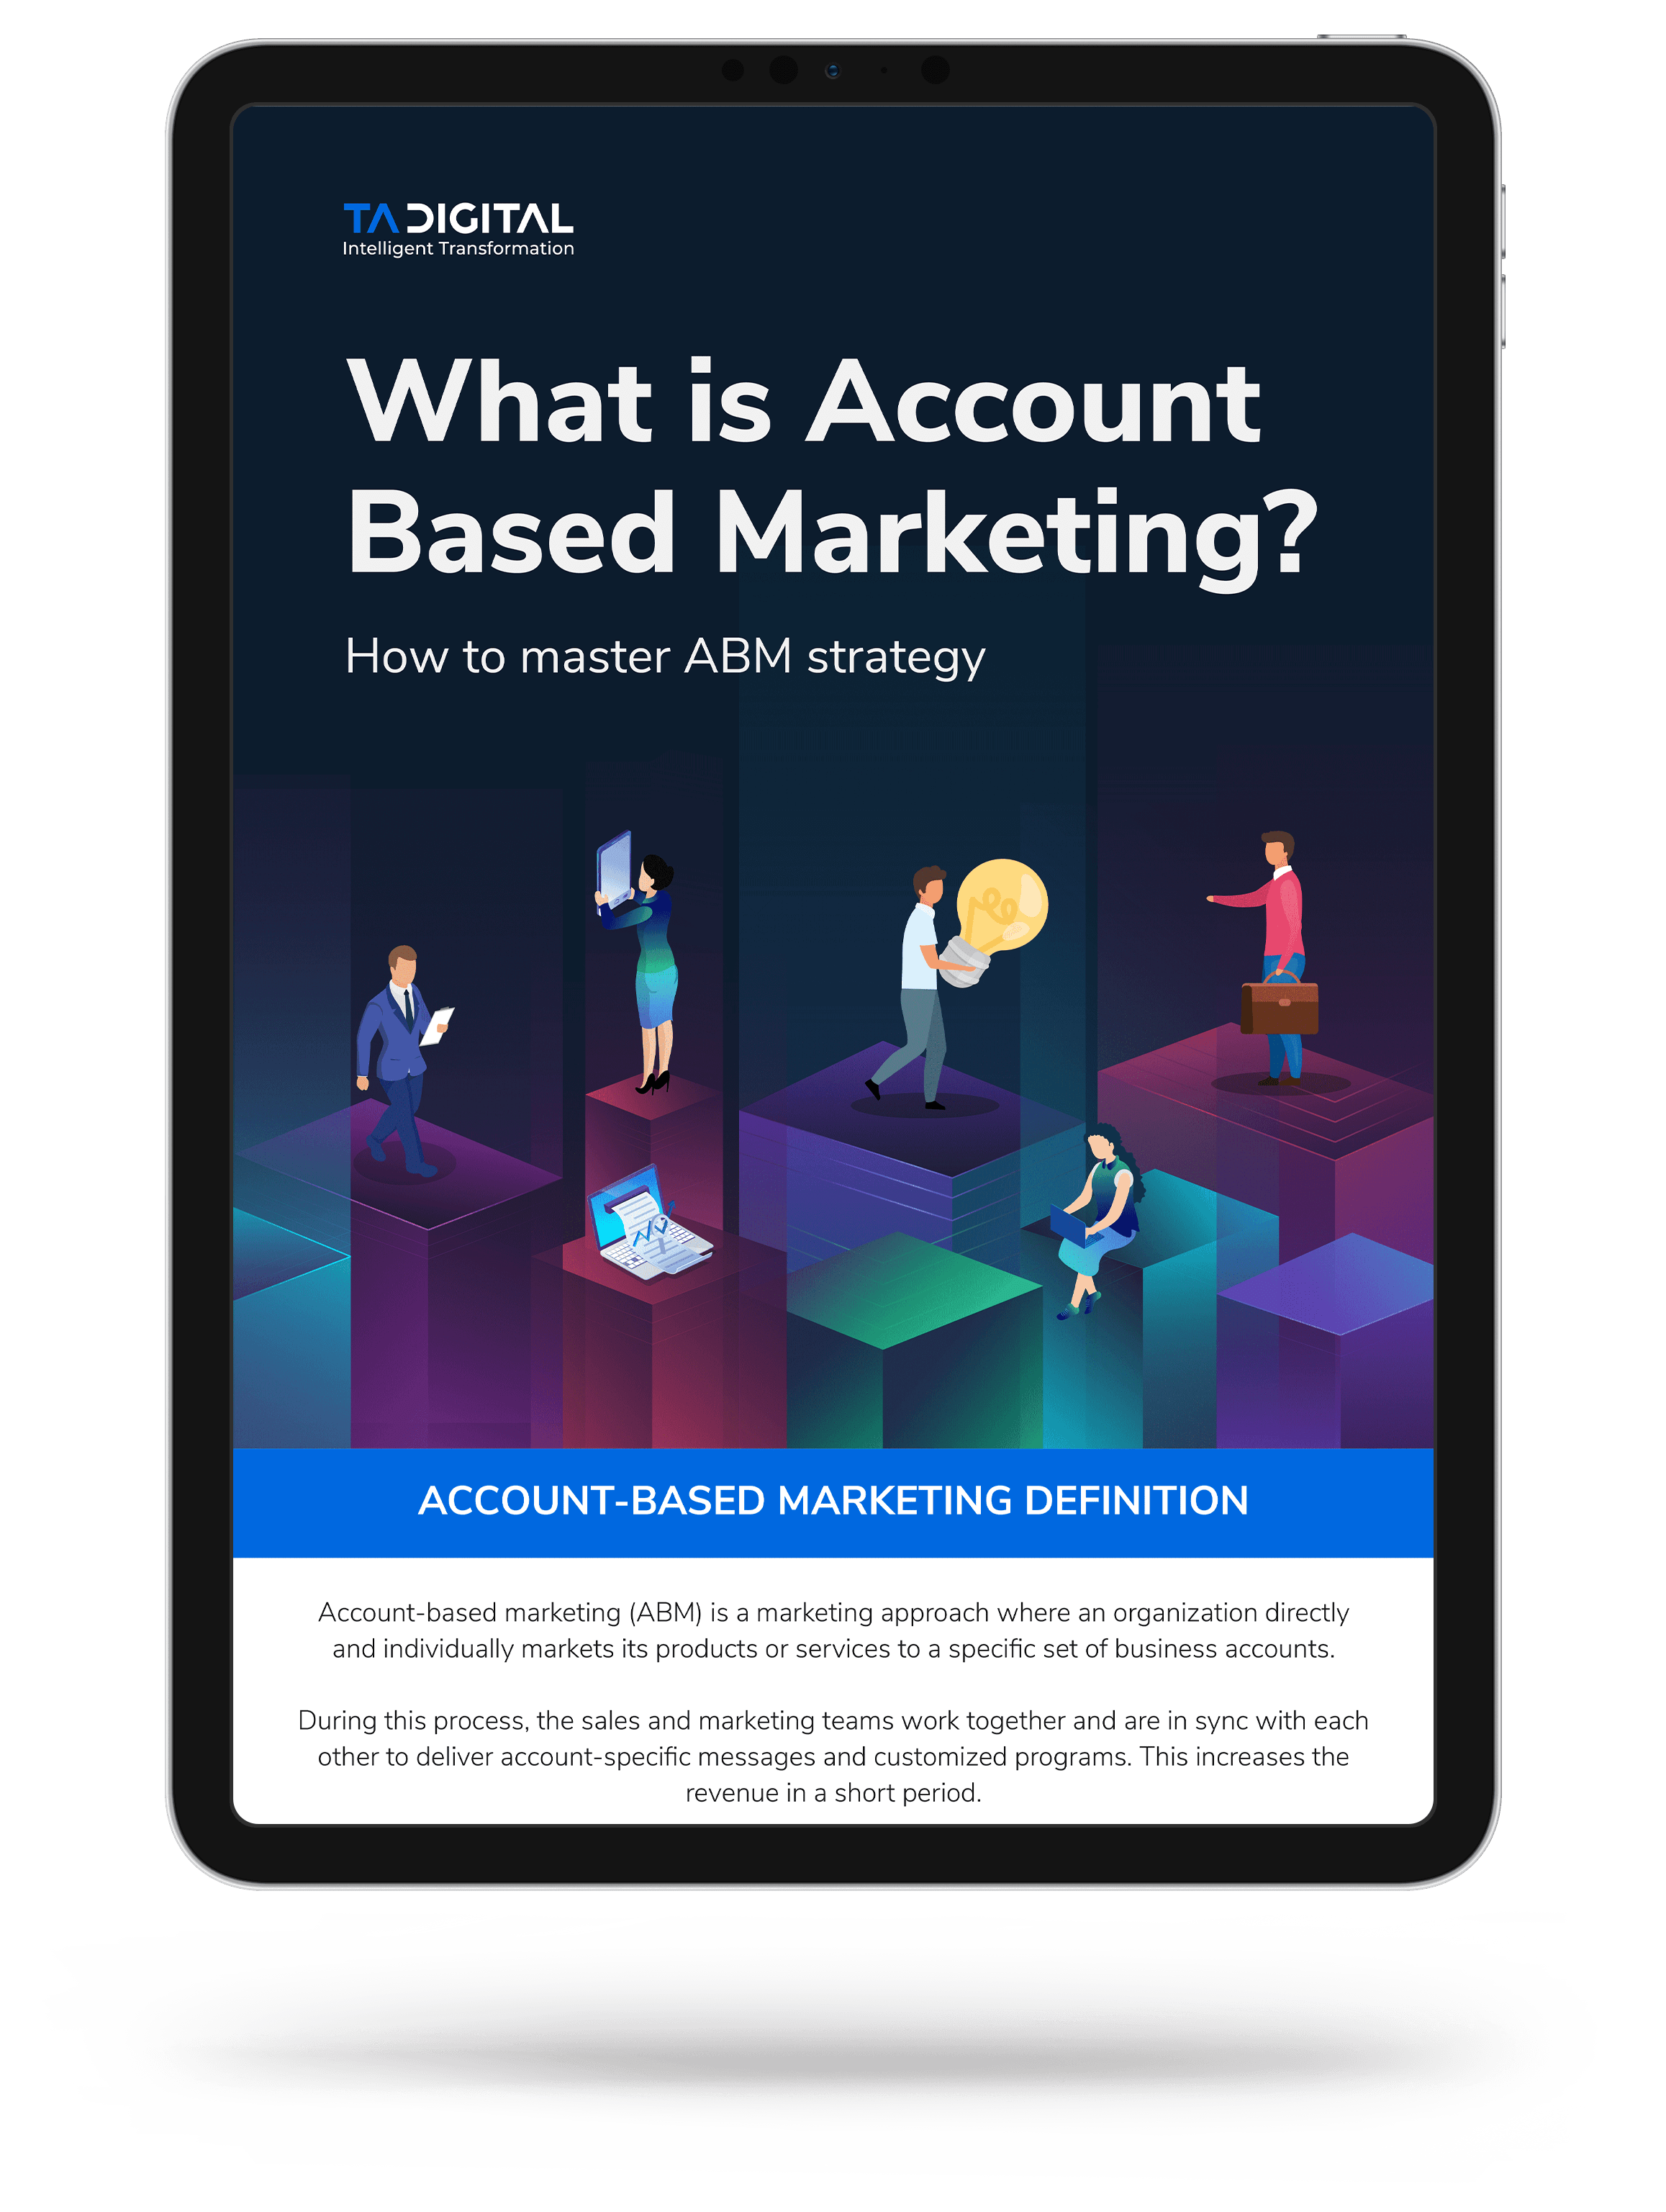 What is account-based marketing? How to master ABM strategy